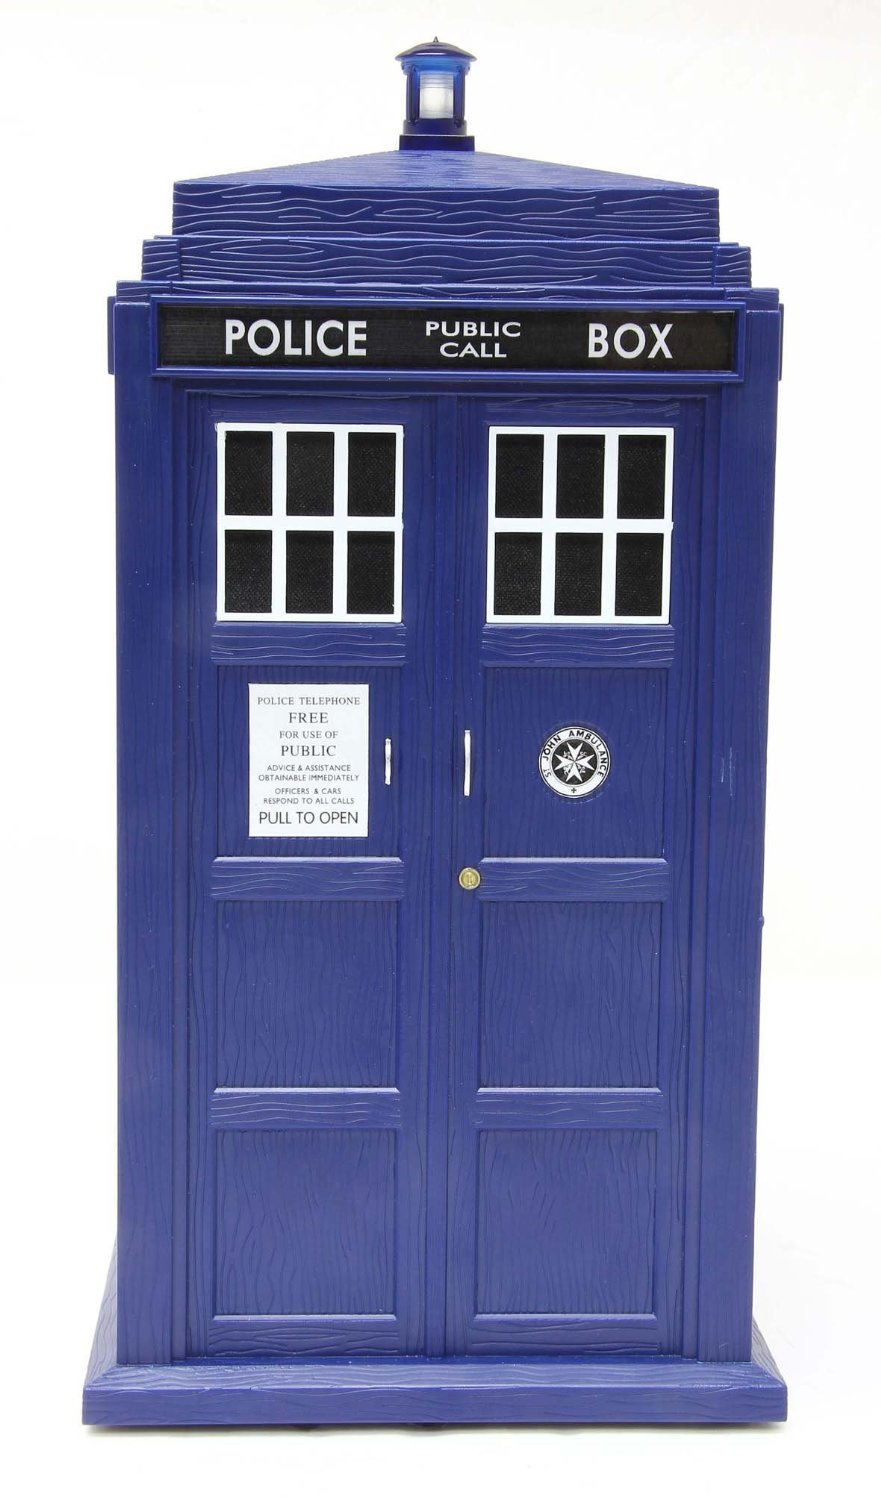 Doctor Who Tardis Speaker System: Amazon.co.uk: Toys & Games